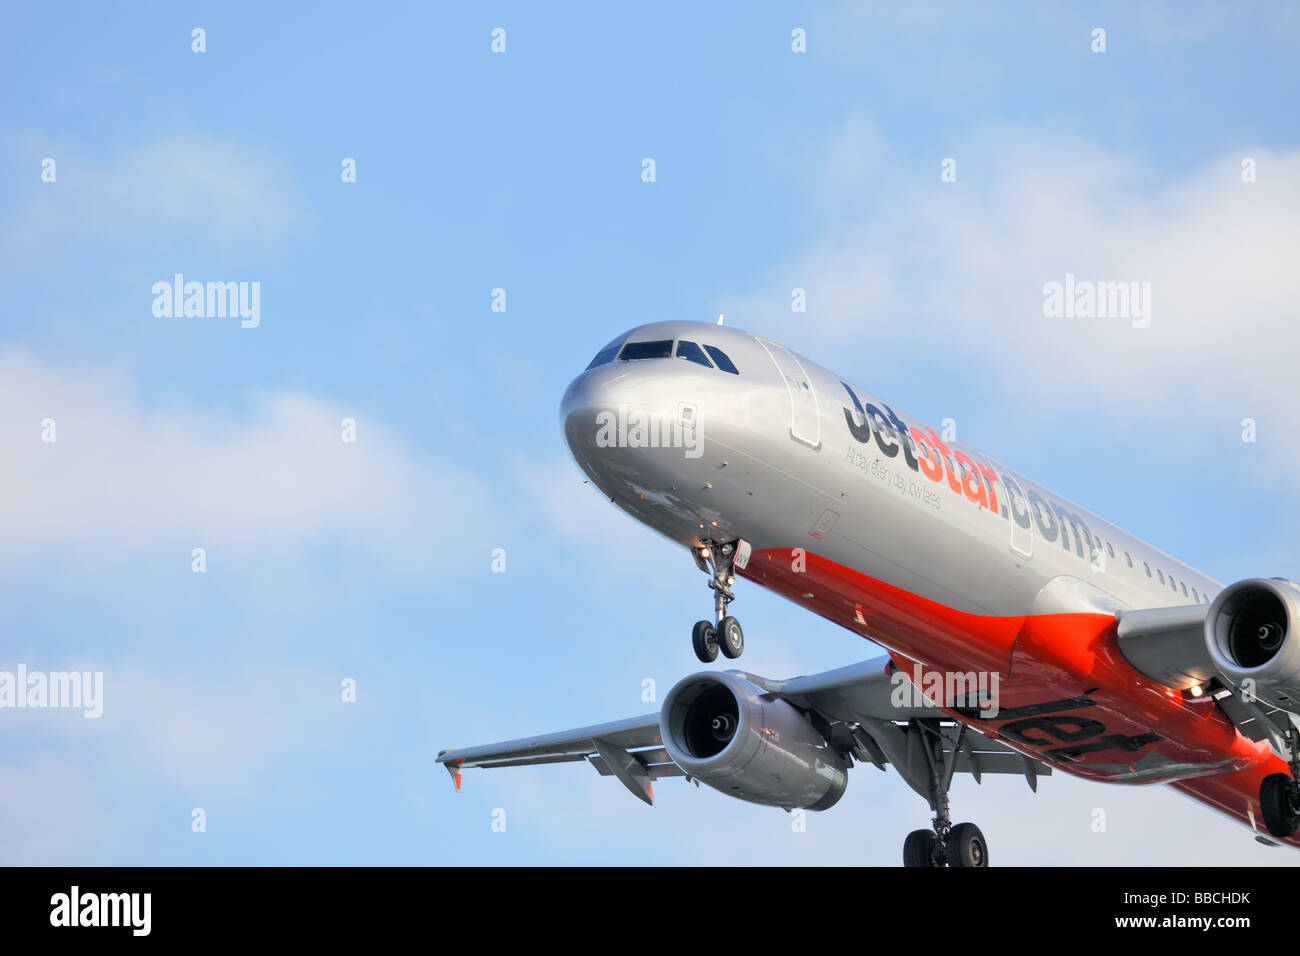 Passenger commercial jet Airbus 320 coming into land - Stock Image